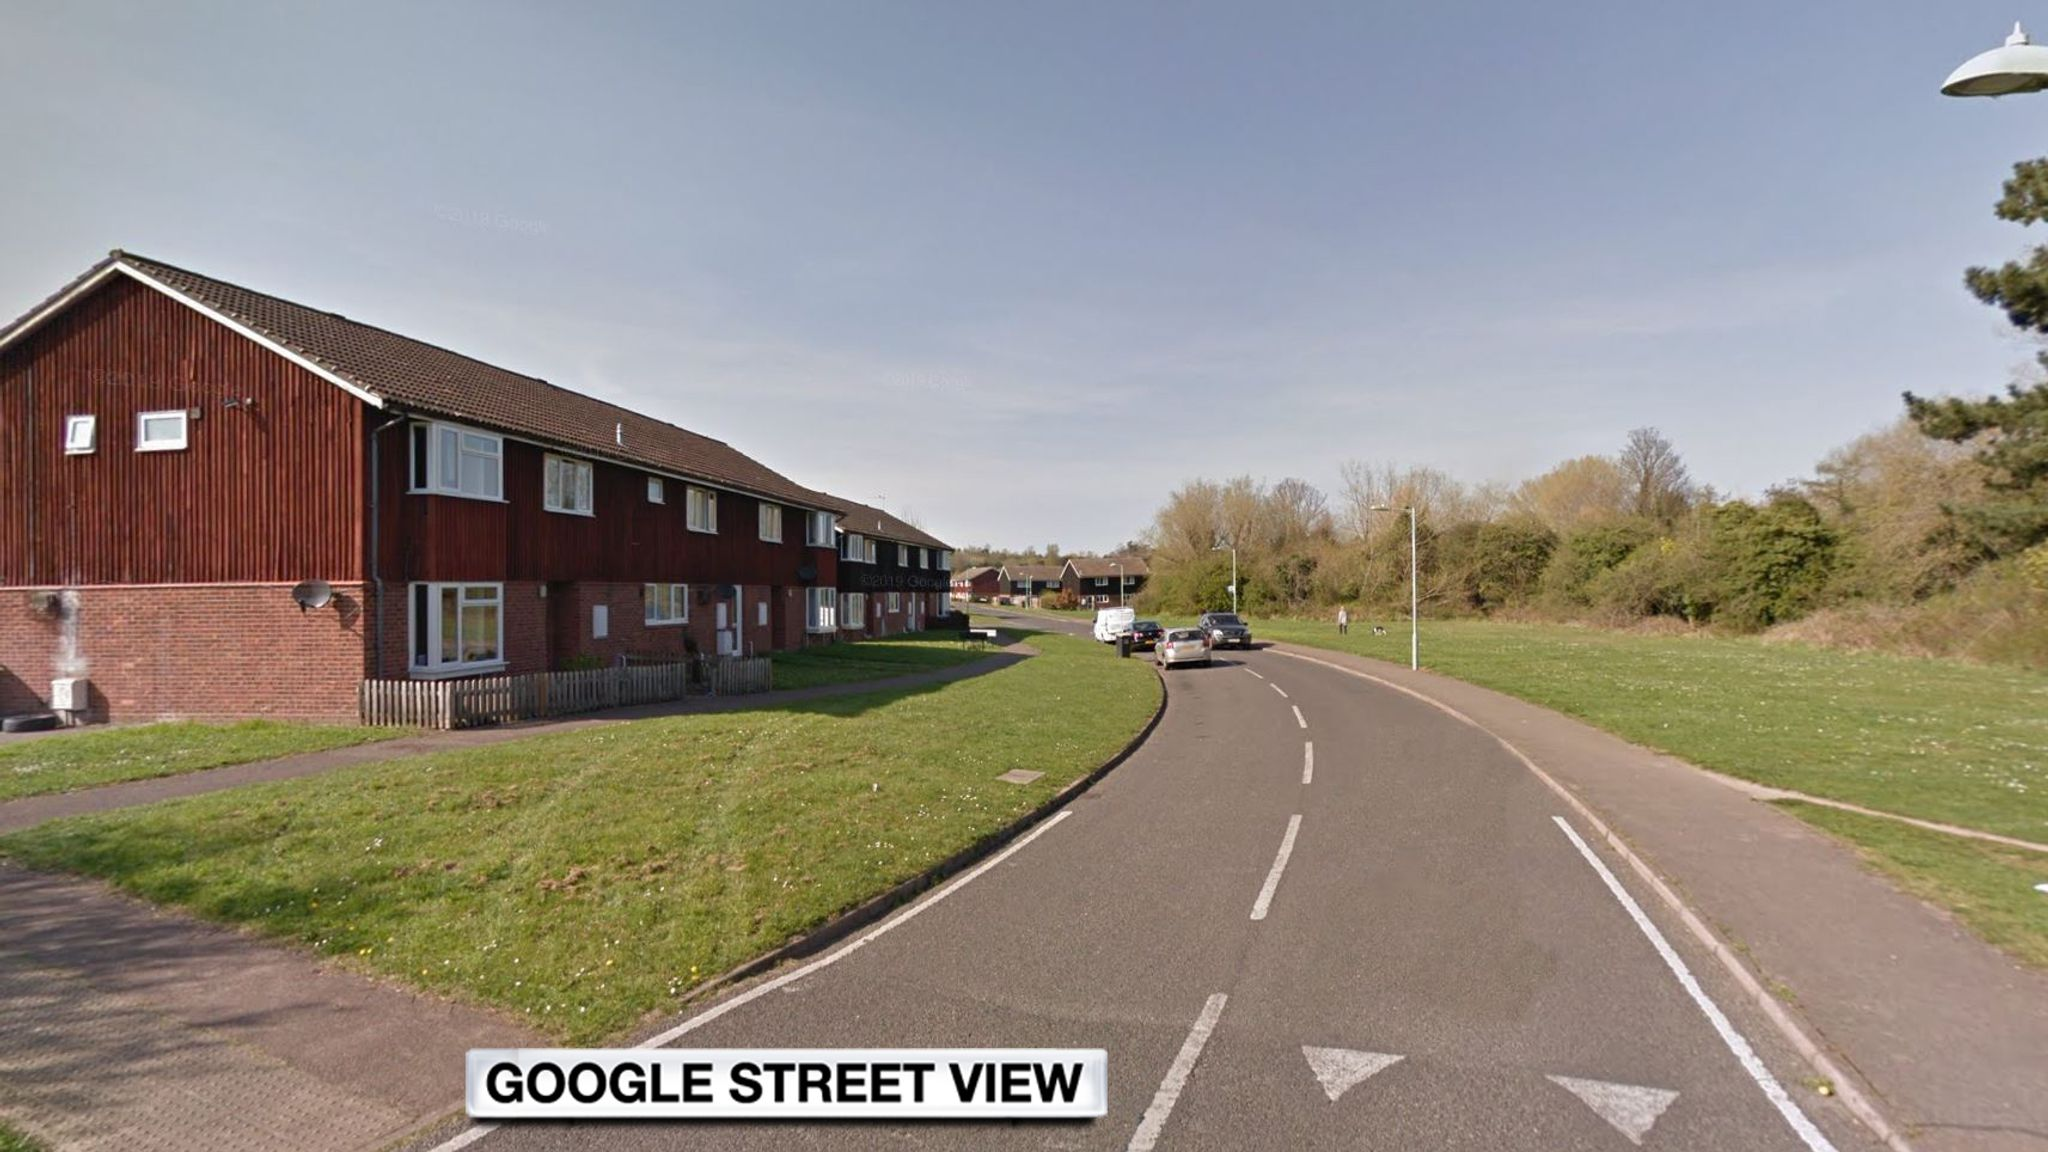 Man arrested after woman stabbed to death in Newmarket, Suffolk